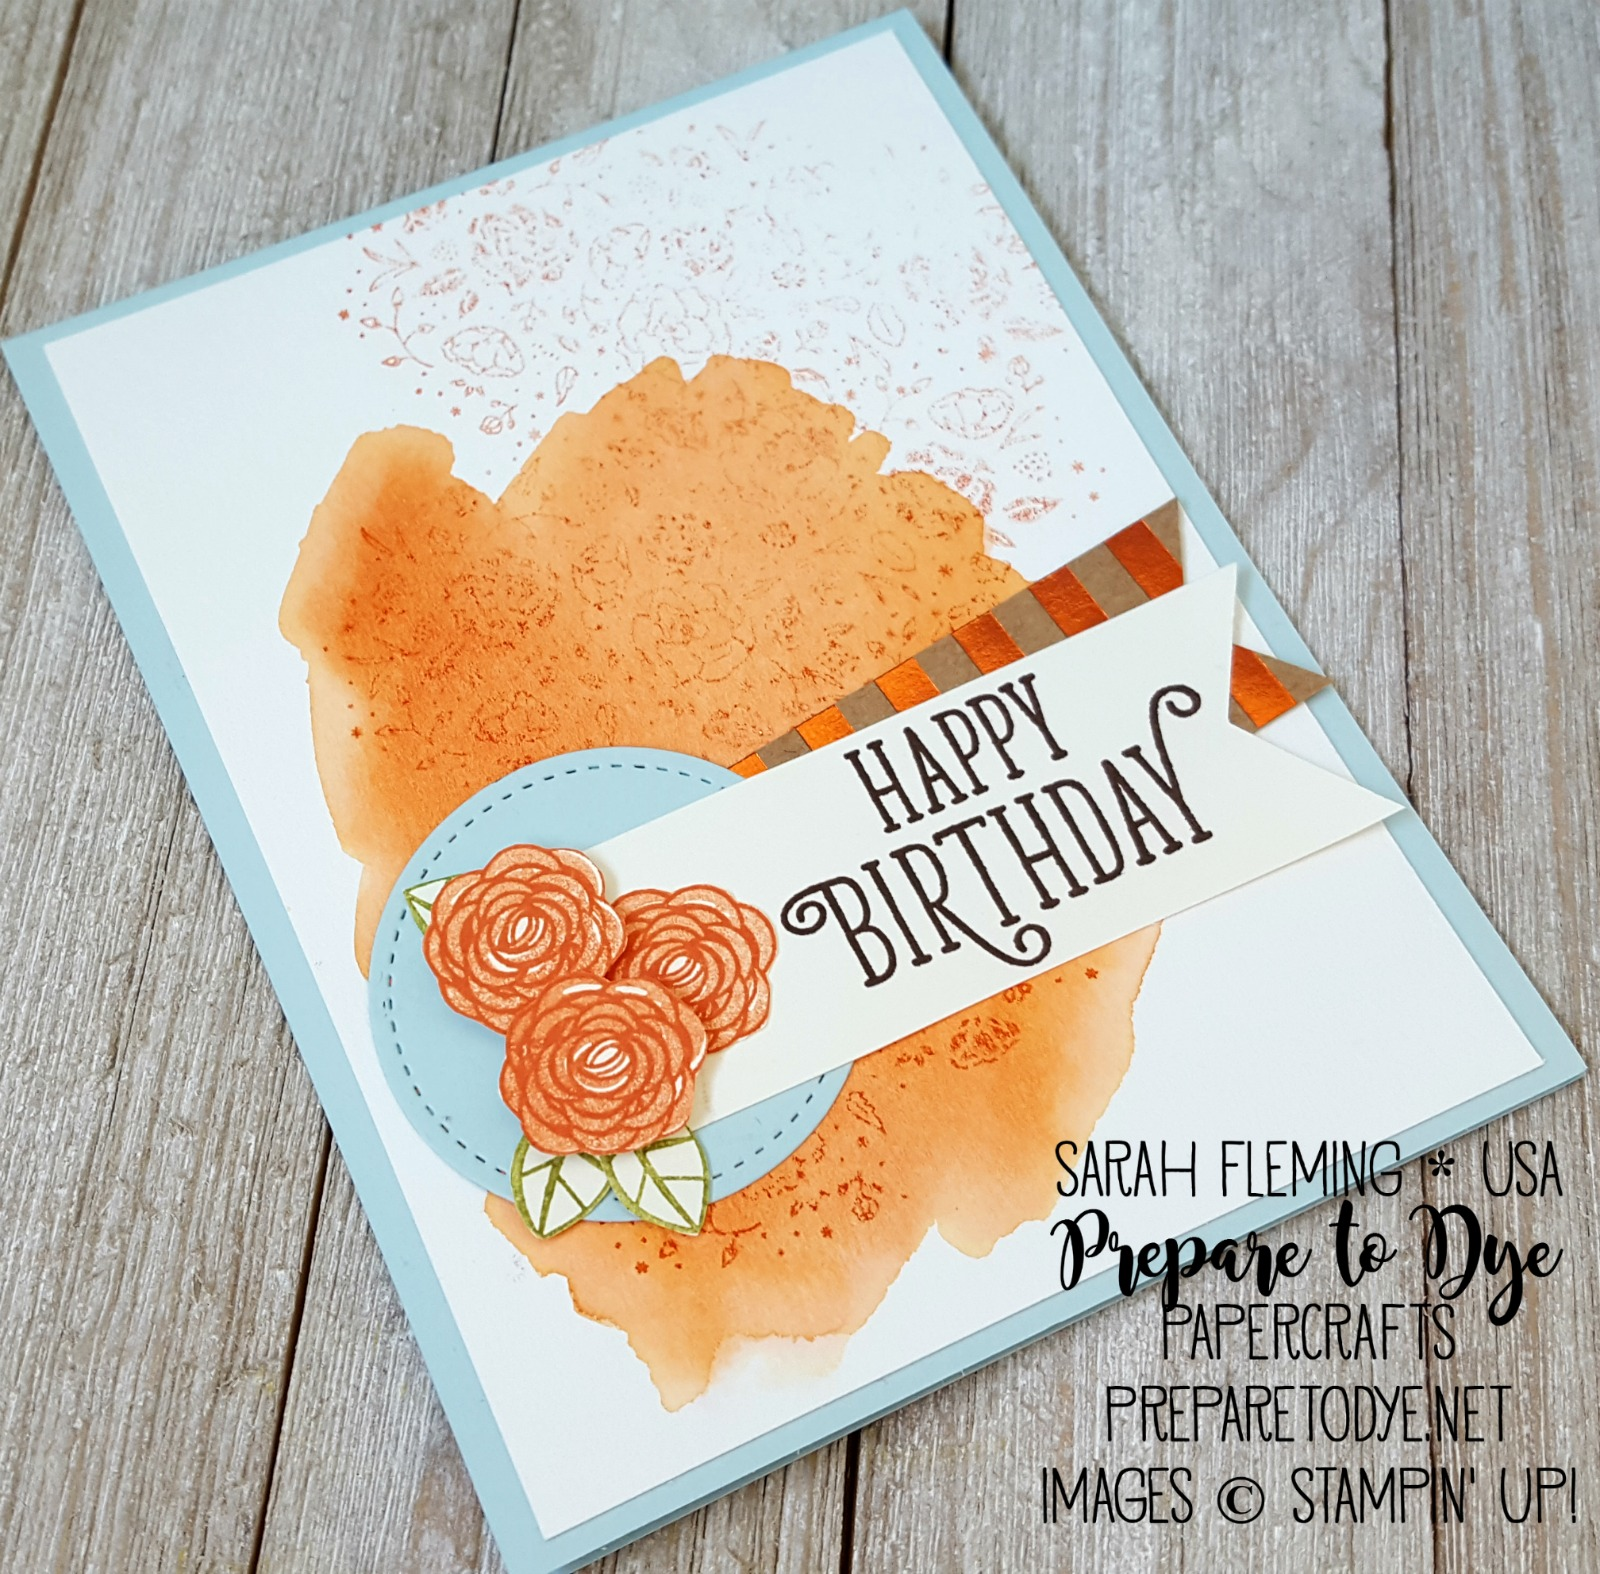 Stampin' Up! Happy Birthday Gorgeous, Wood Words, and Foil Frenzy paper - Sarah Fleming - Prepare to Dye Papercrafts